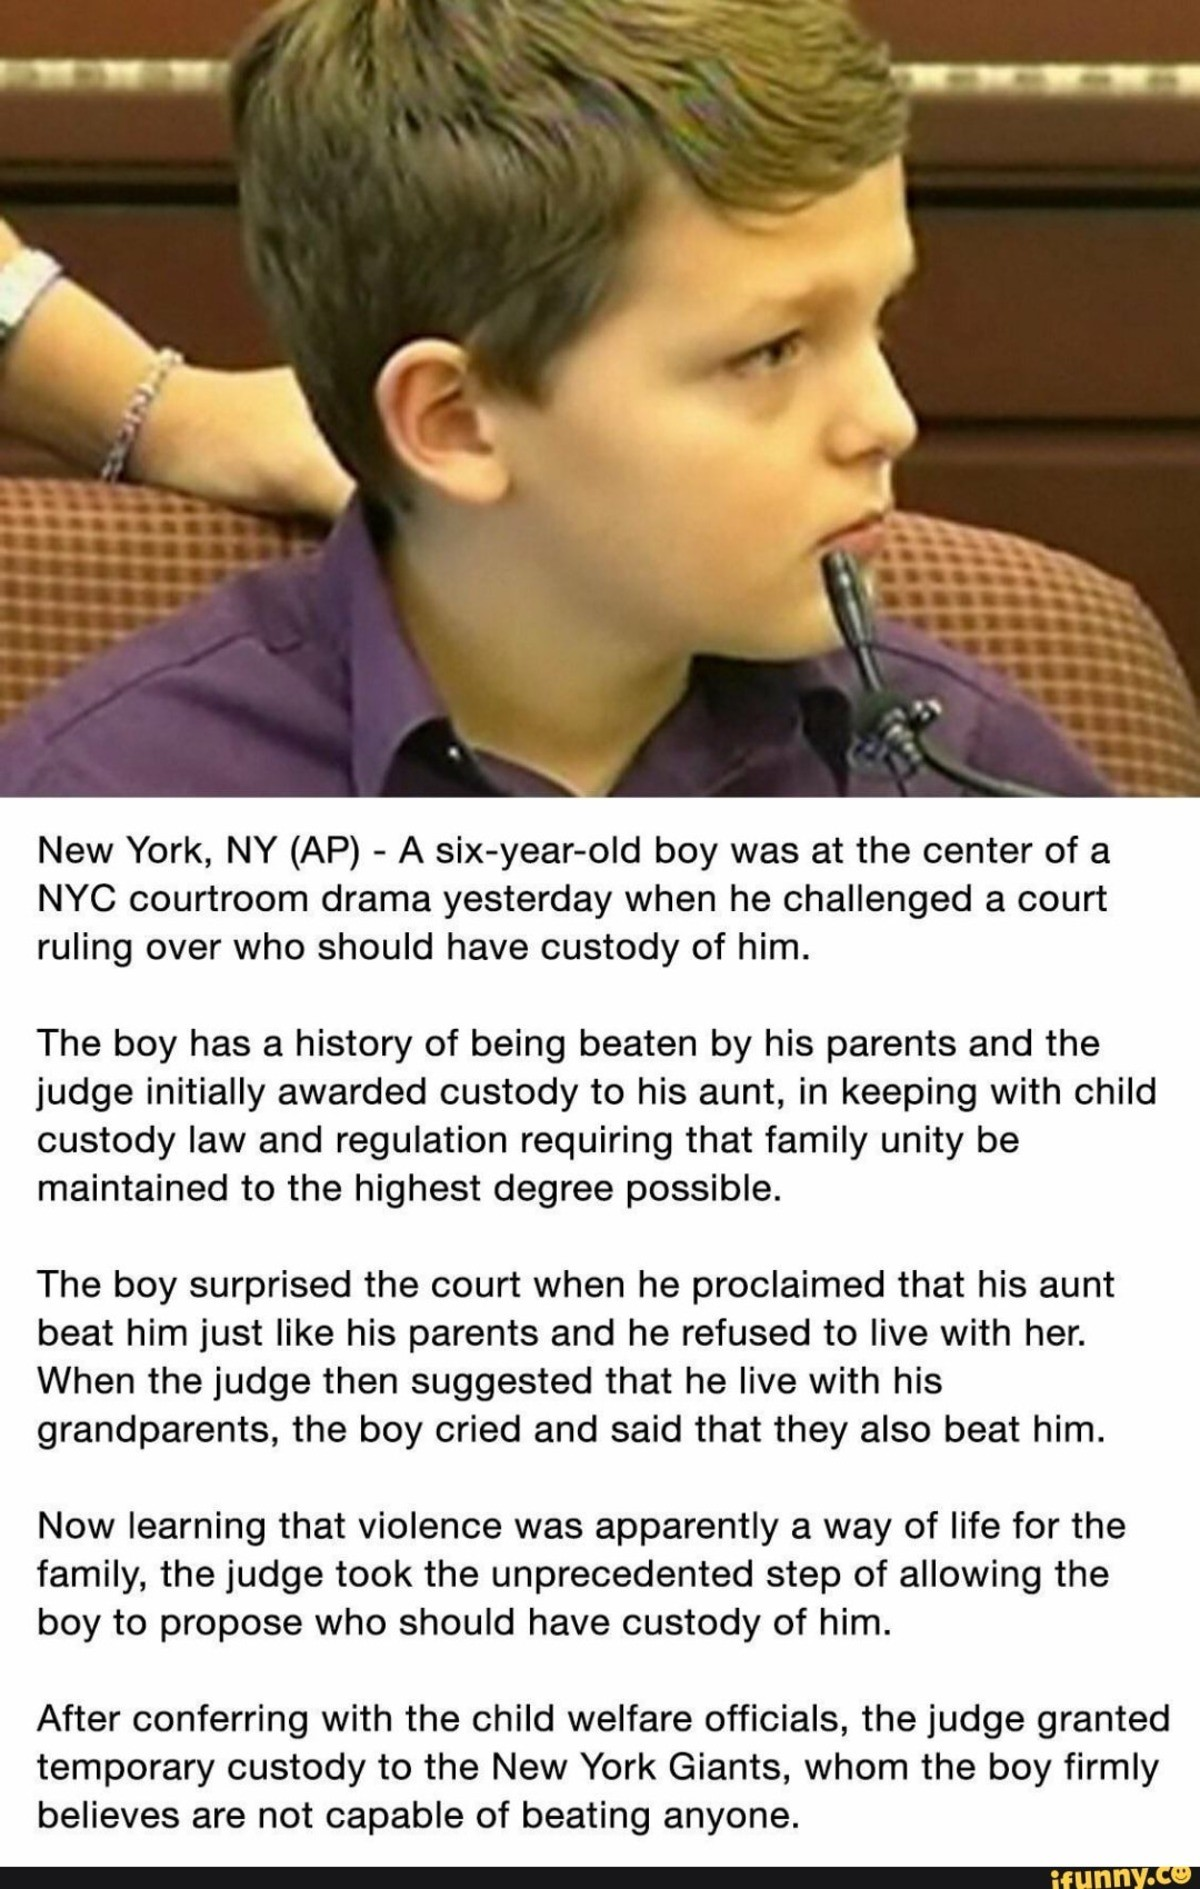 Justice. . New York, NY (AP) - A boy was at the center of a NYC courtroom drama yesterday when he challenged a court ruling over who should have custody of him.